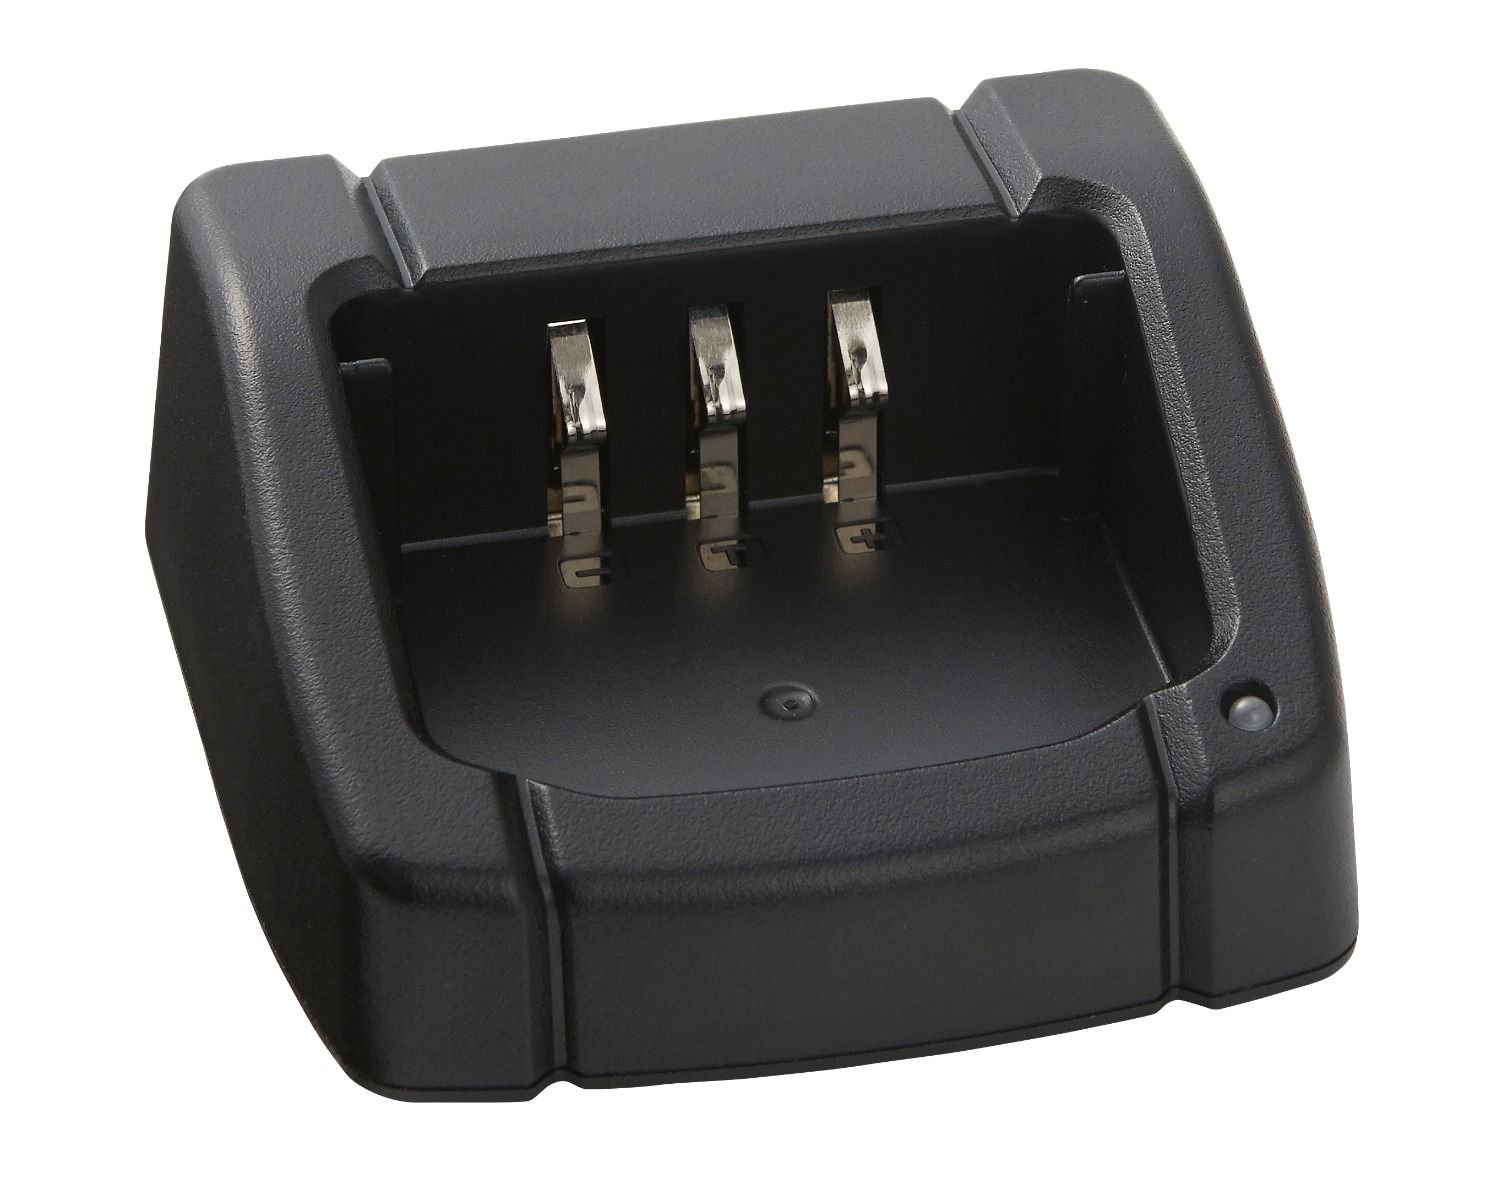 Yaesu SBH-22 Desktop Rapid Charger for use with The Yaesu FT-25R and FT-65R Handheld Radios